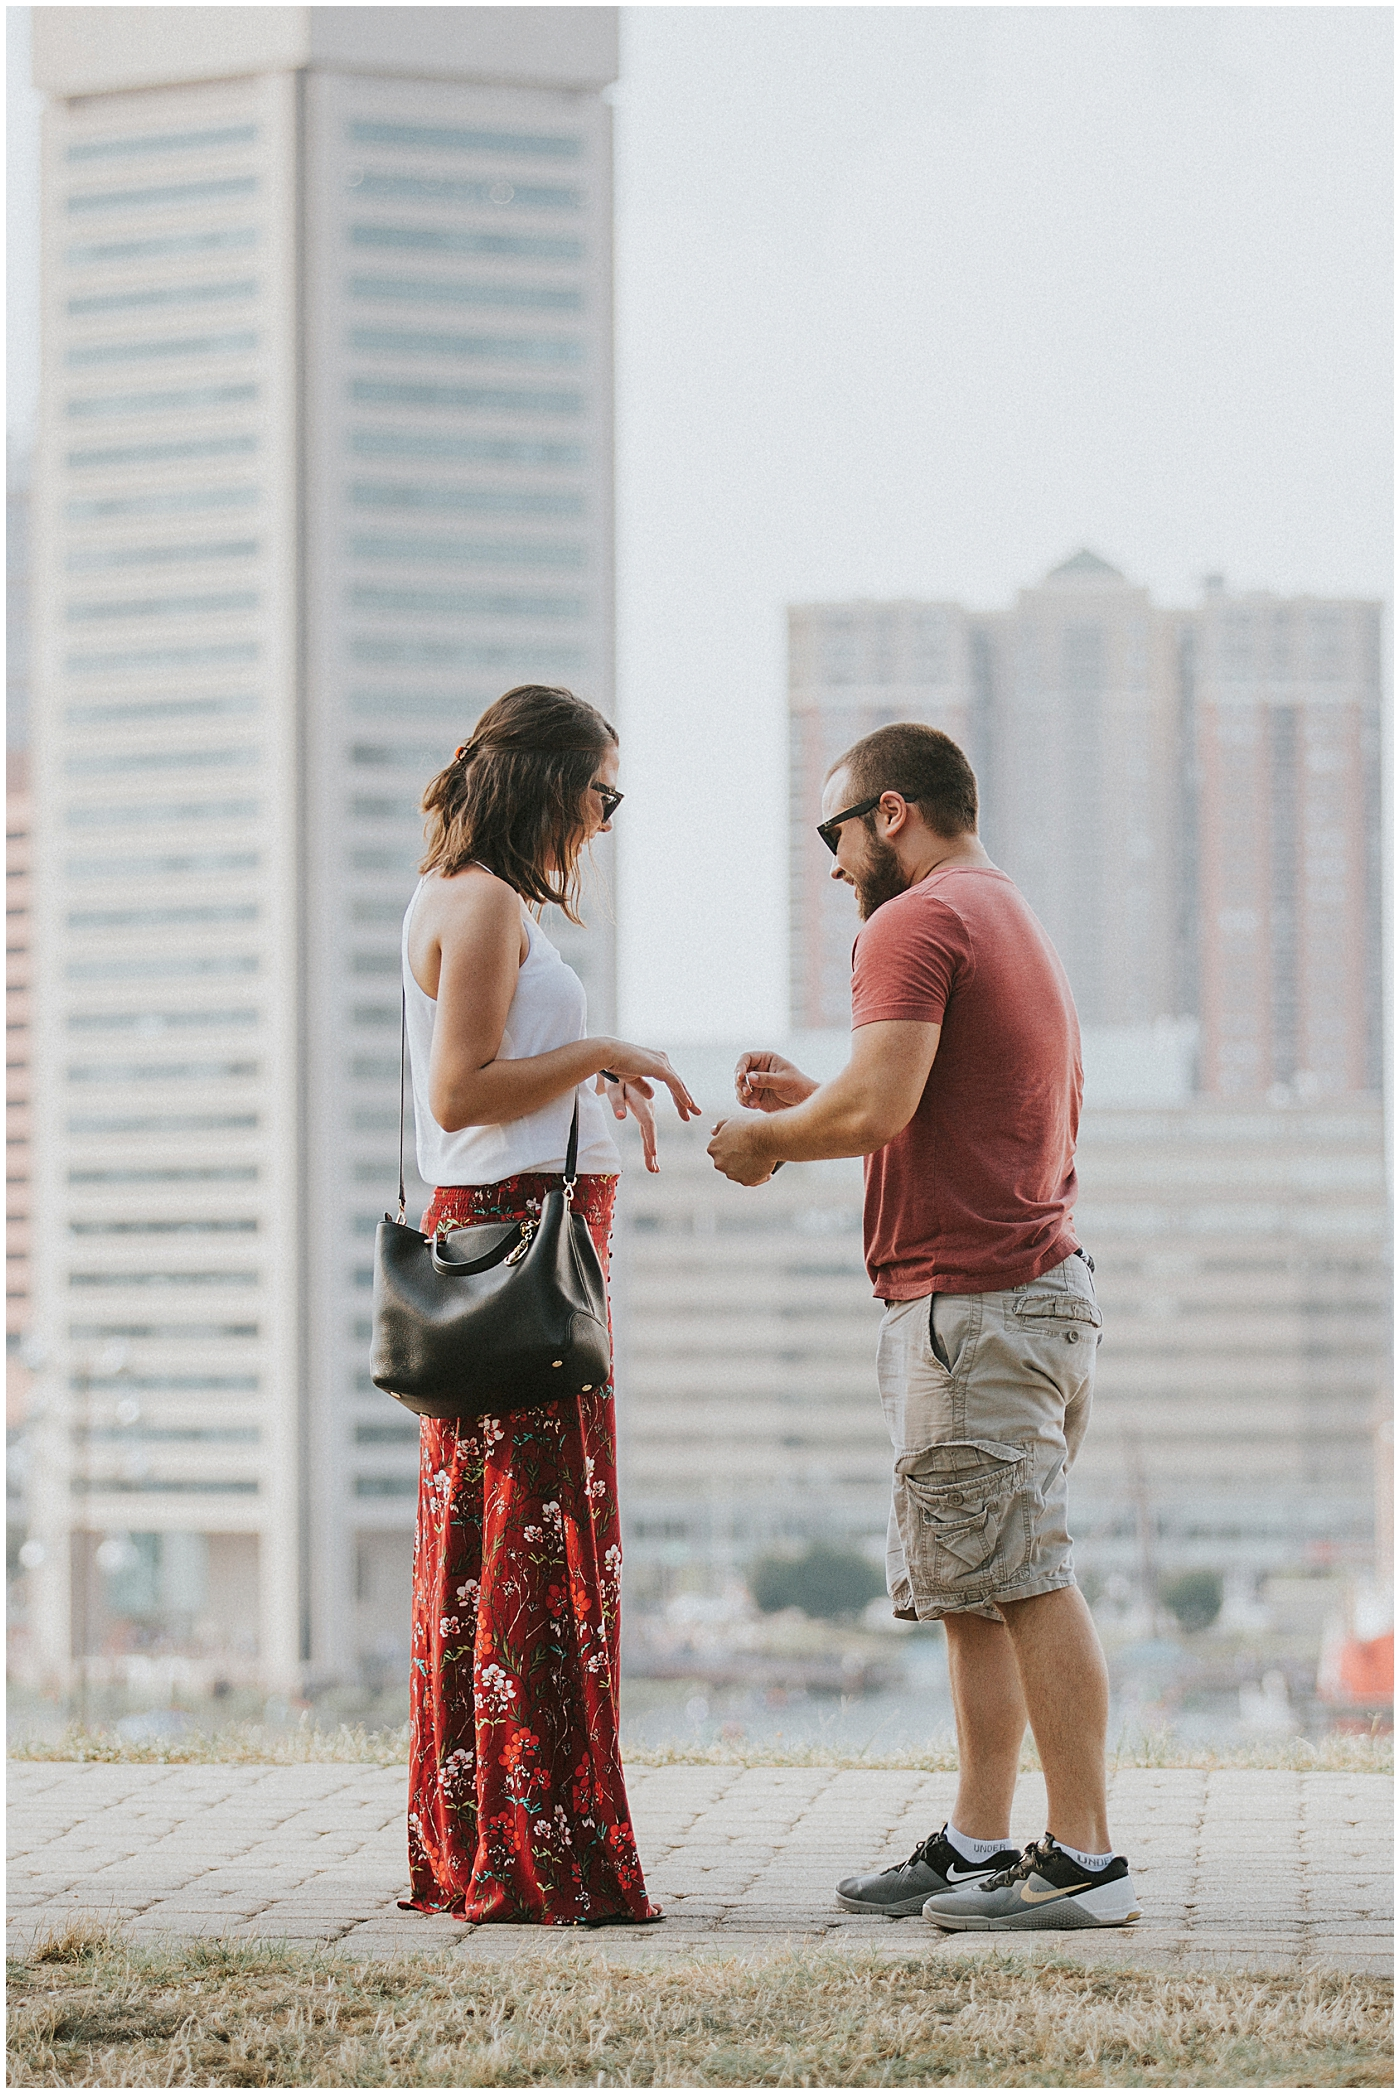 2016-07-24_0007 Our Best Friends' Scenic Proposal at Federal Hill | Haleigh + Mike